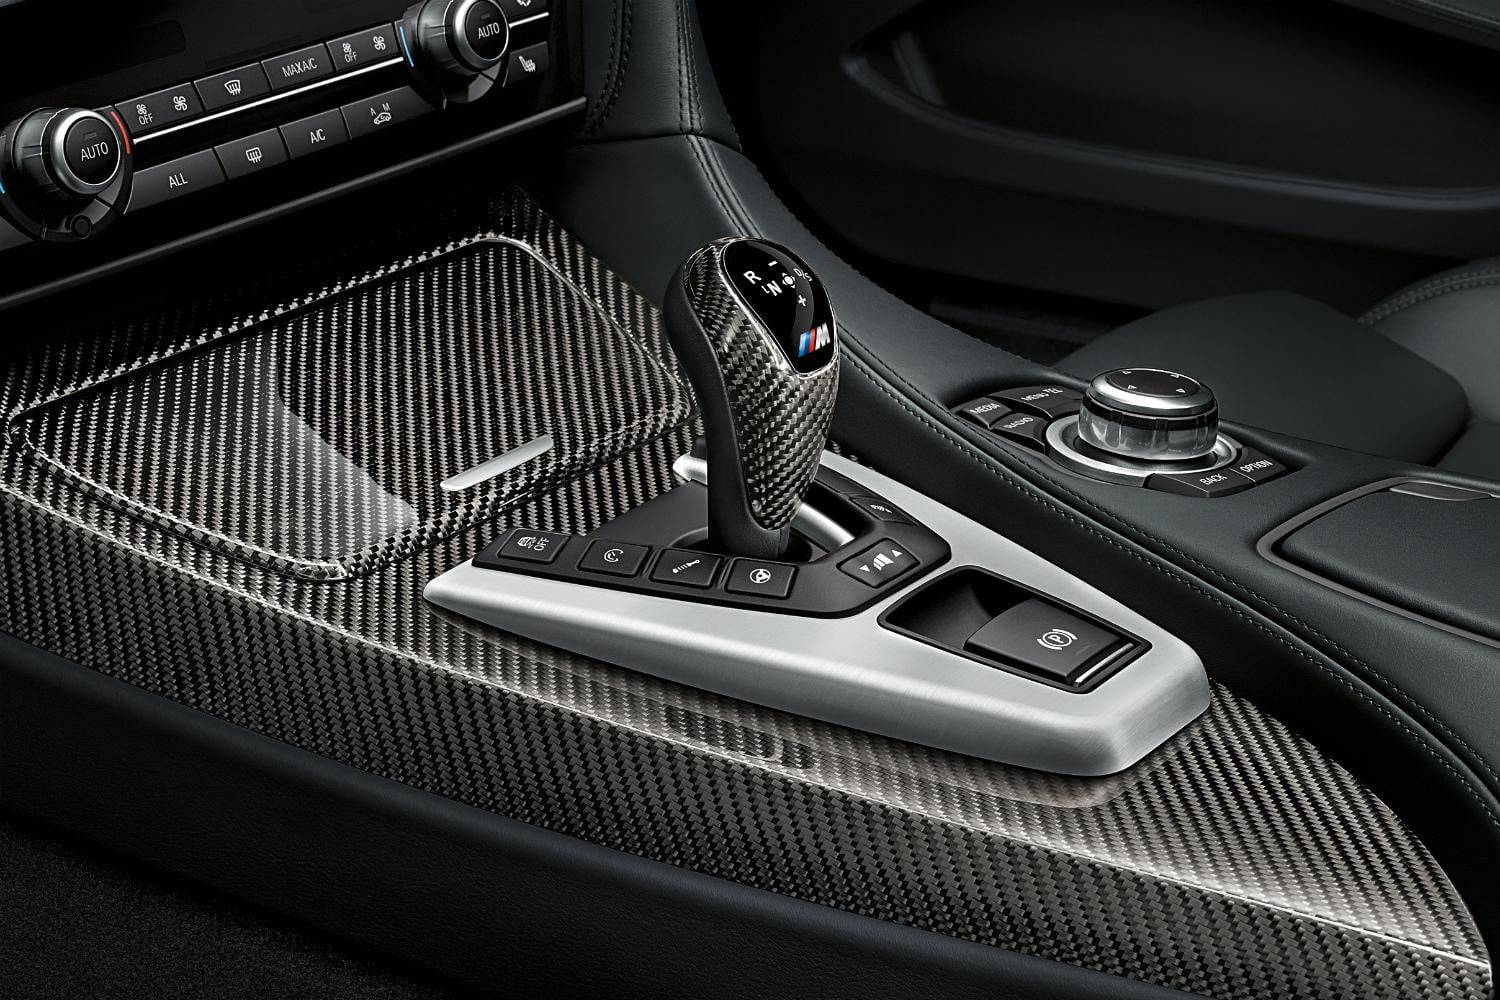 No word on how much this carbon fiber trim will cost, but given that it comes from BMW, it won't be cheap,